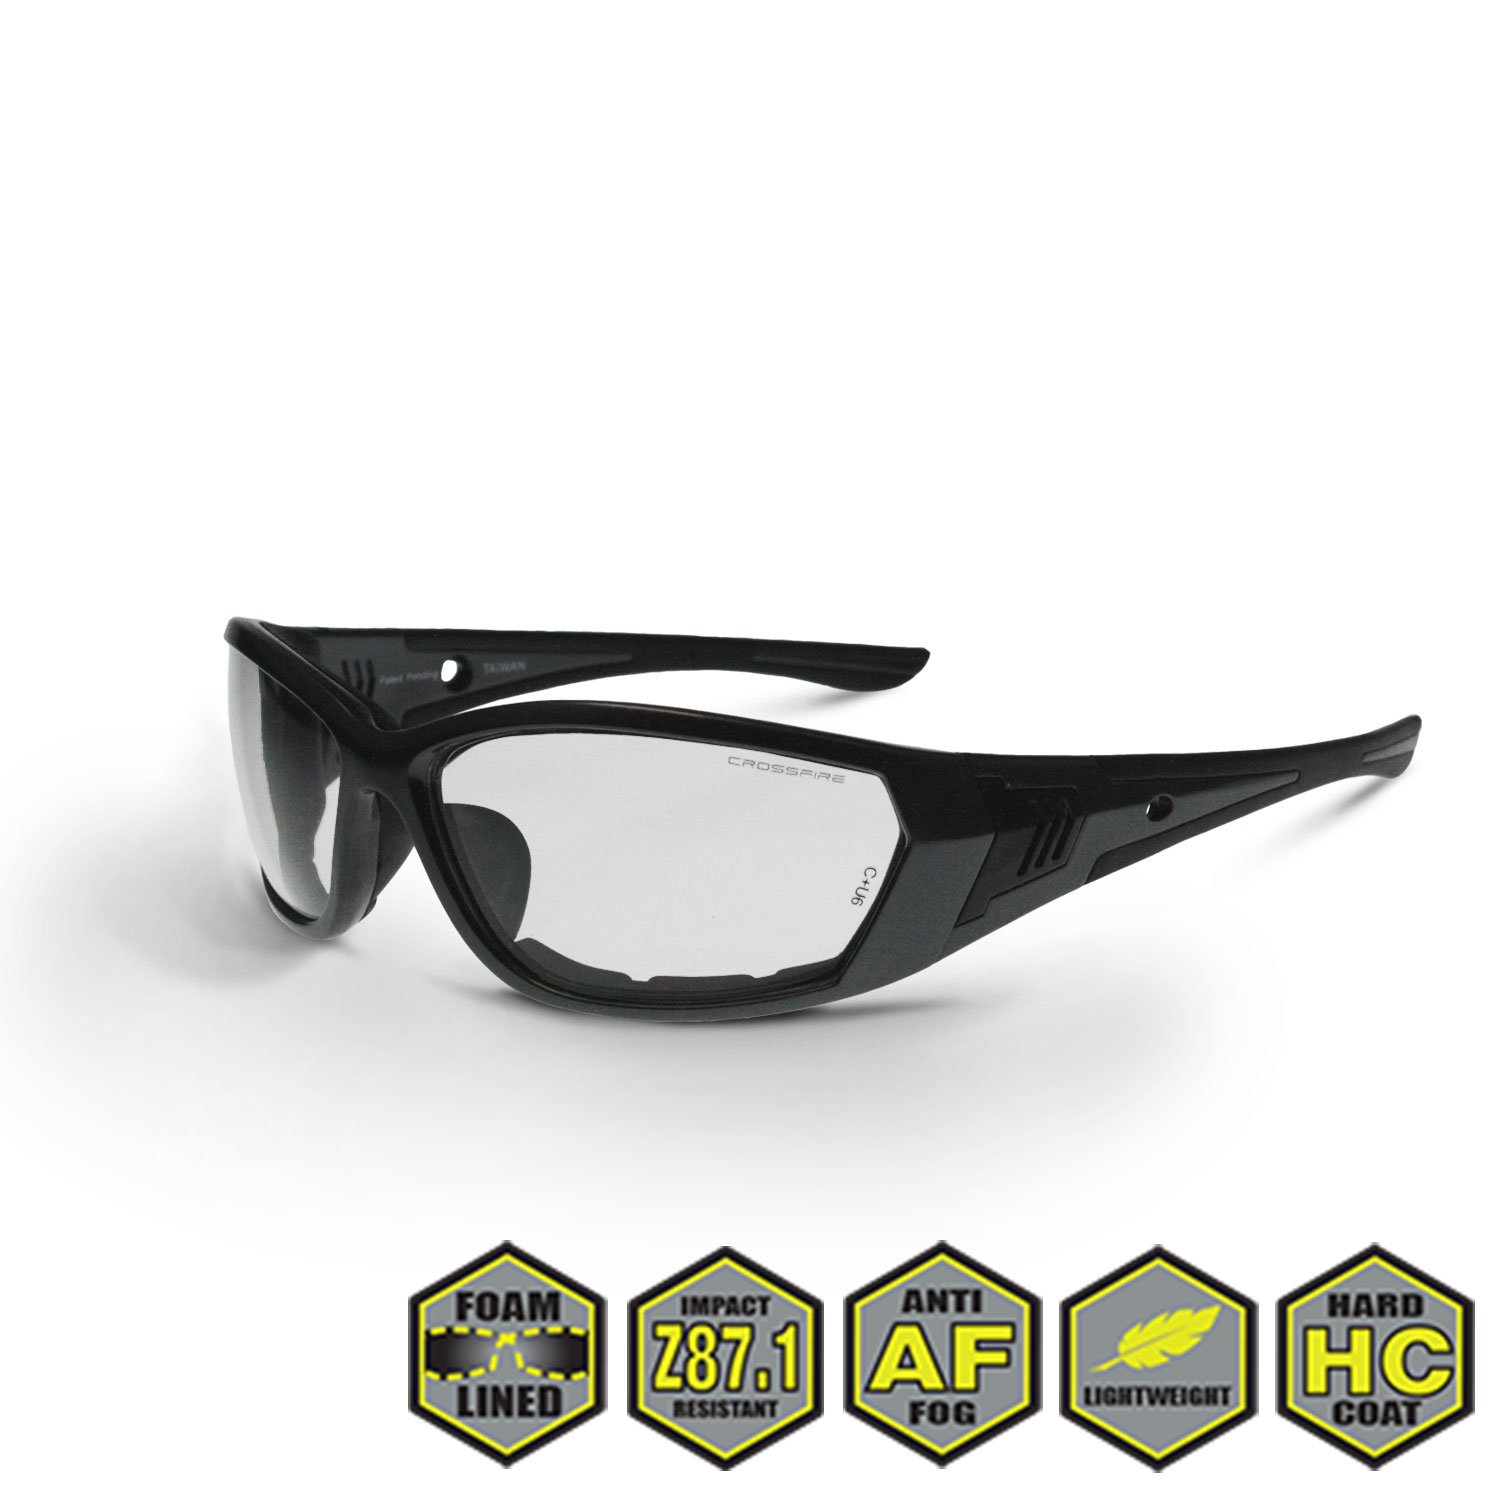 b751040687430 Radians Crossfire 3541 Foam Lined Safety Glasses